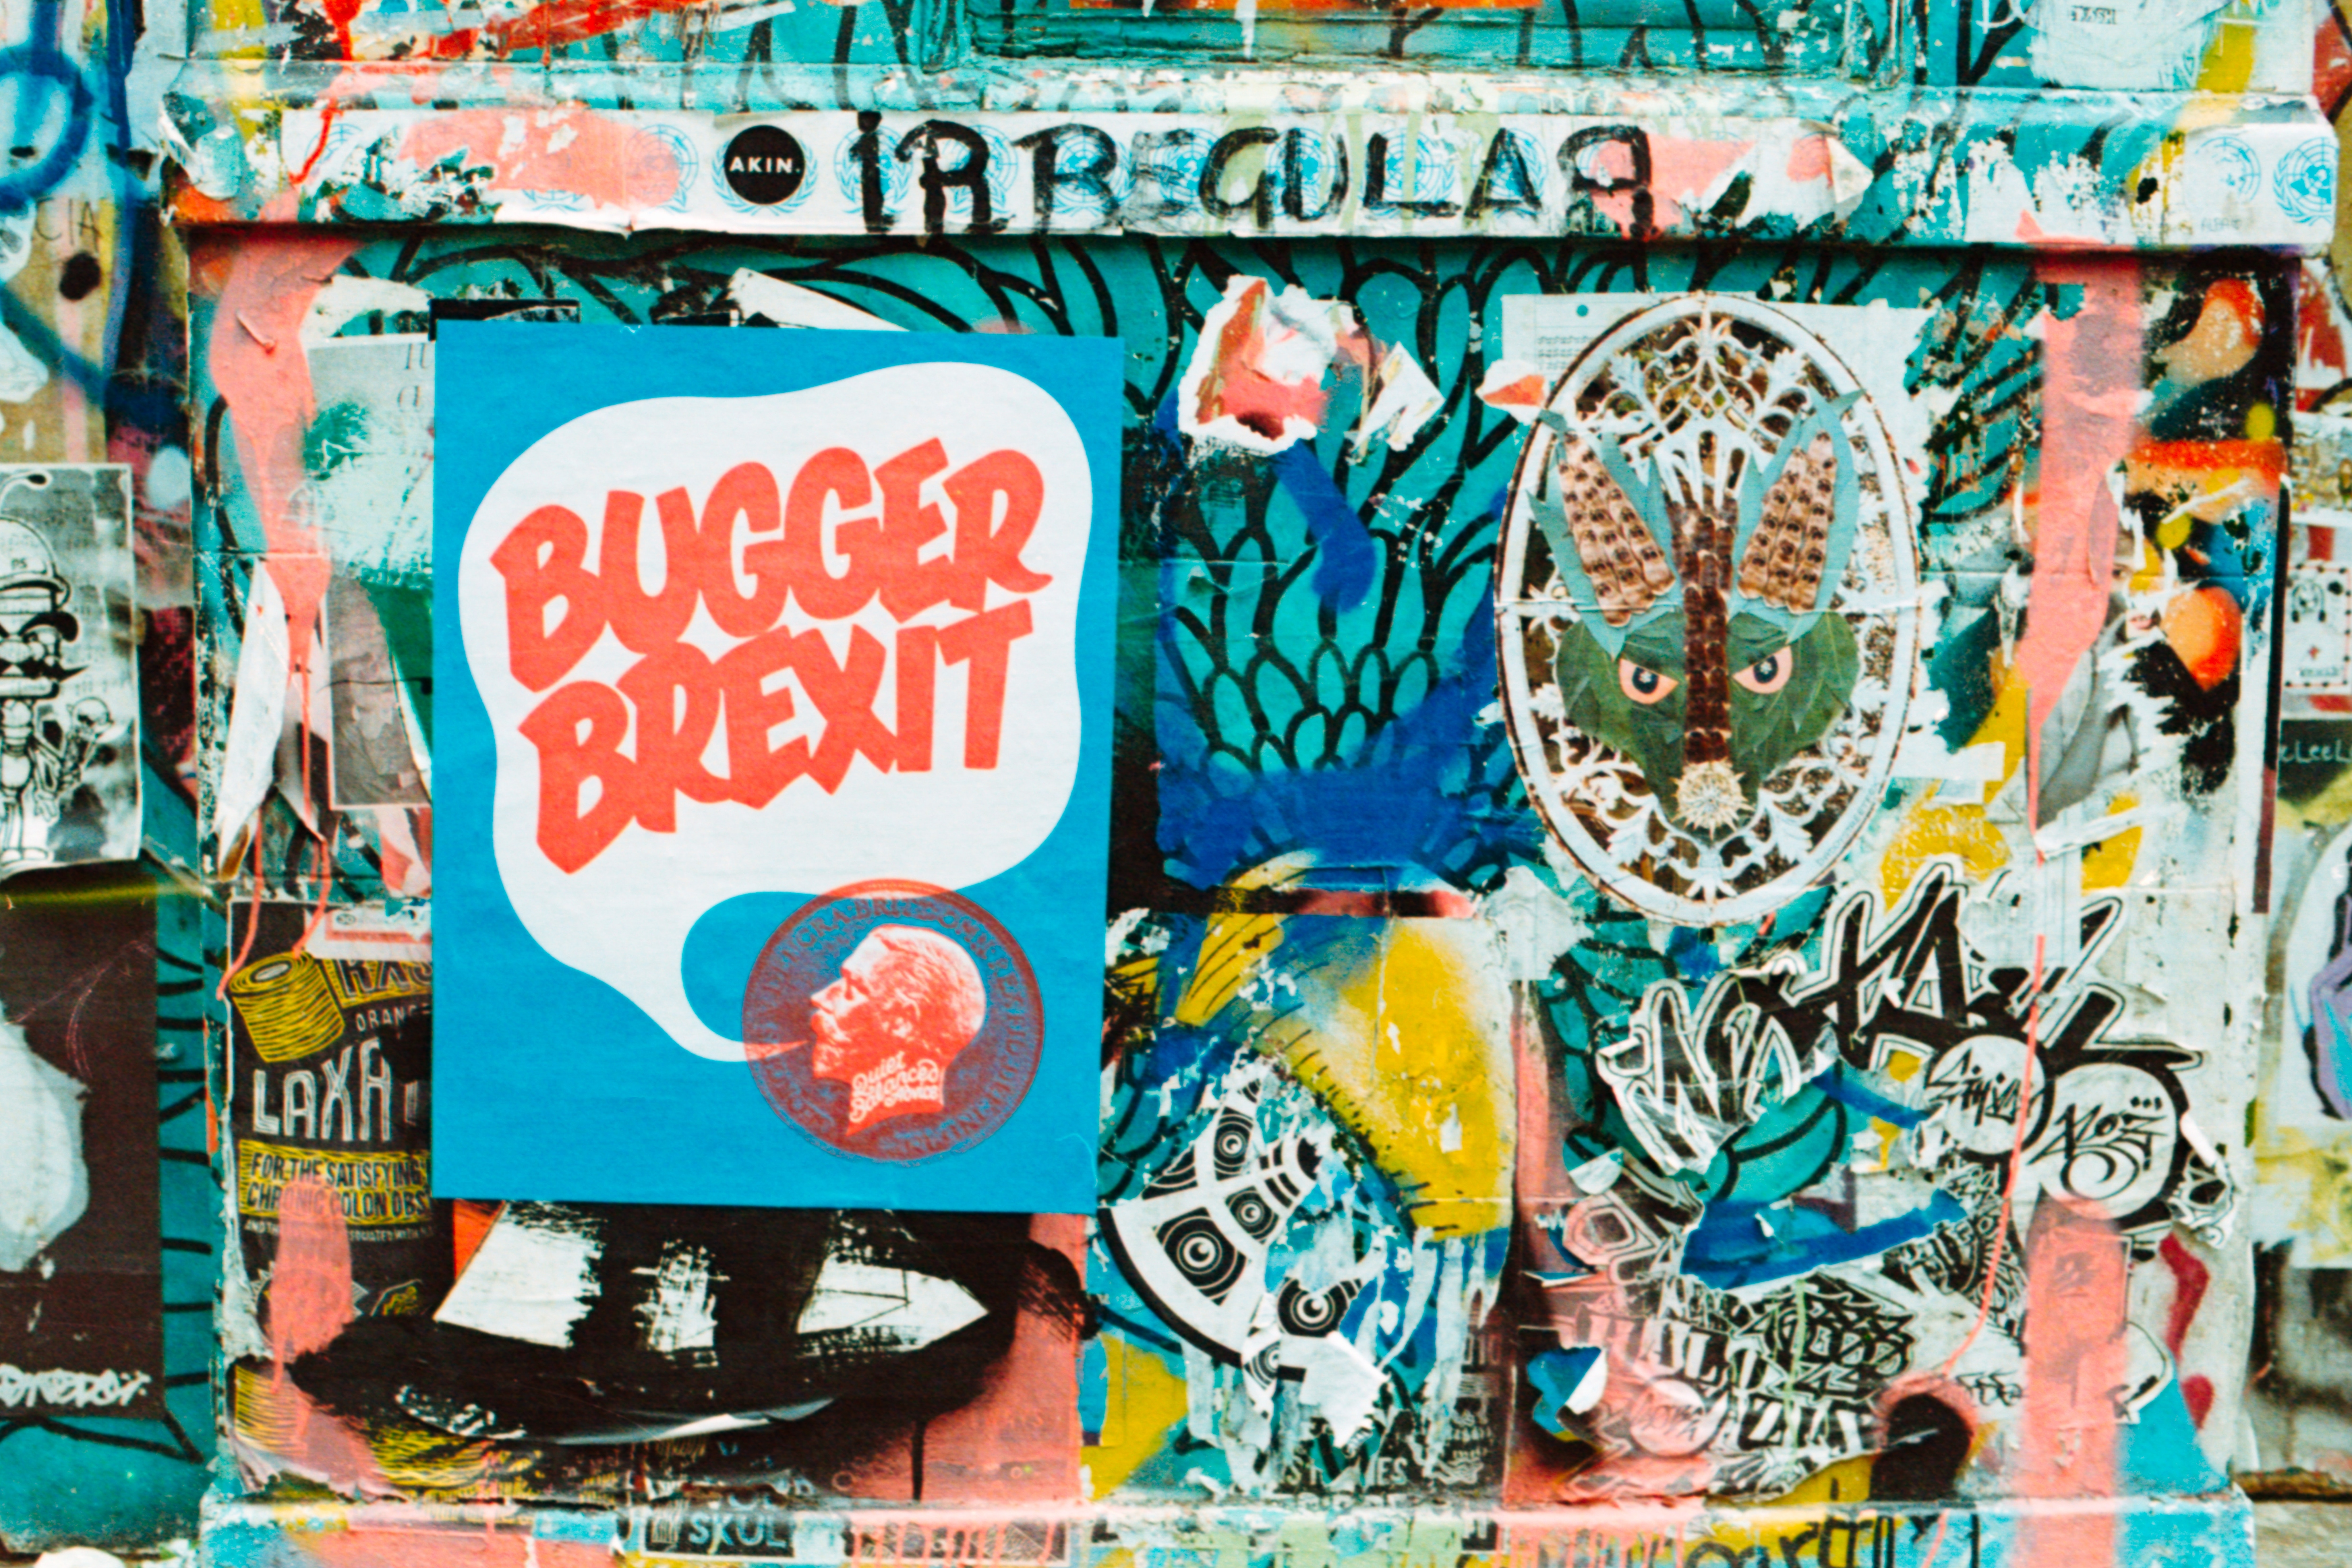 TEFL in Spain after Brexit